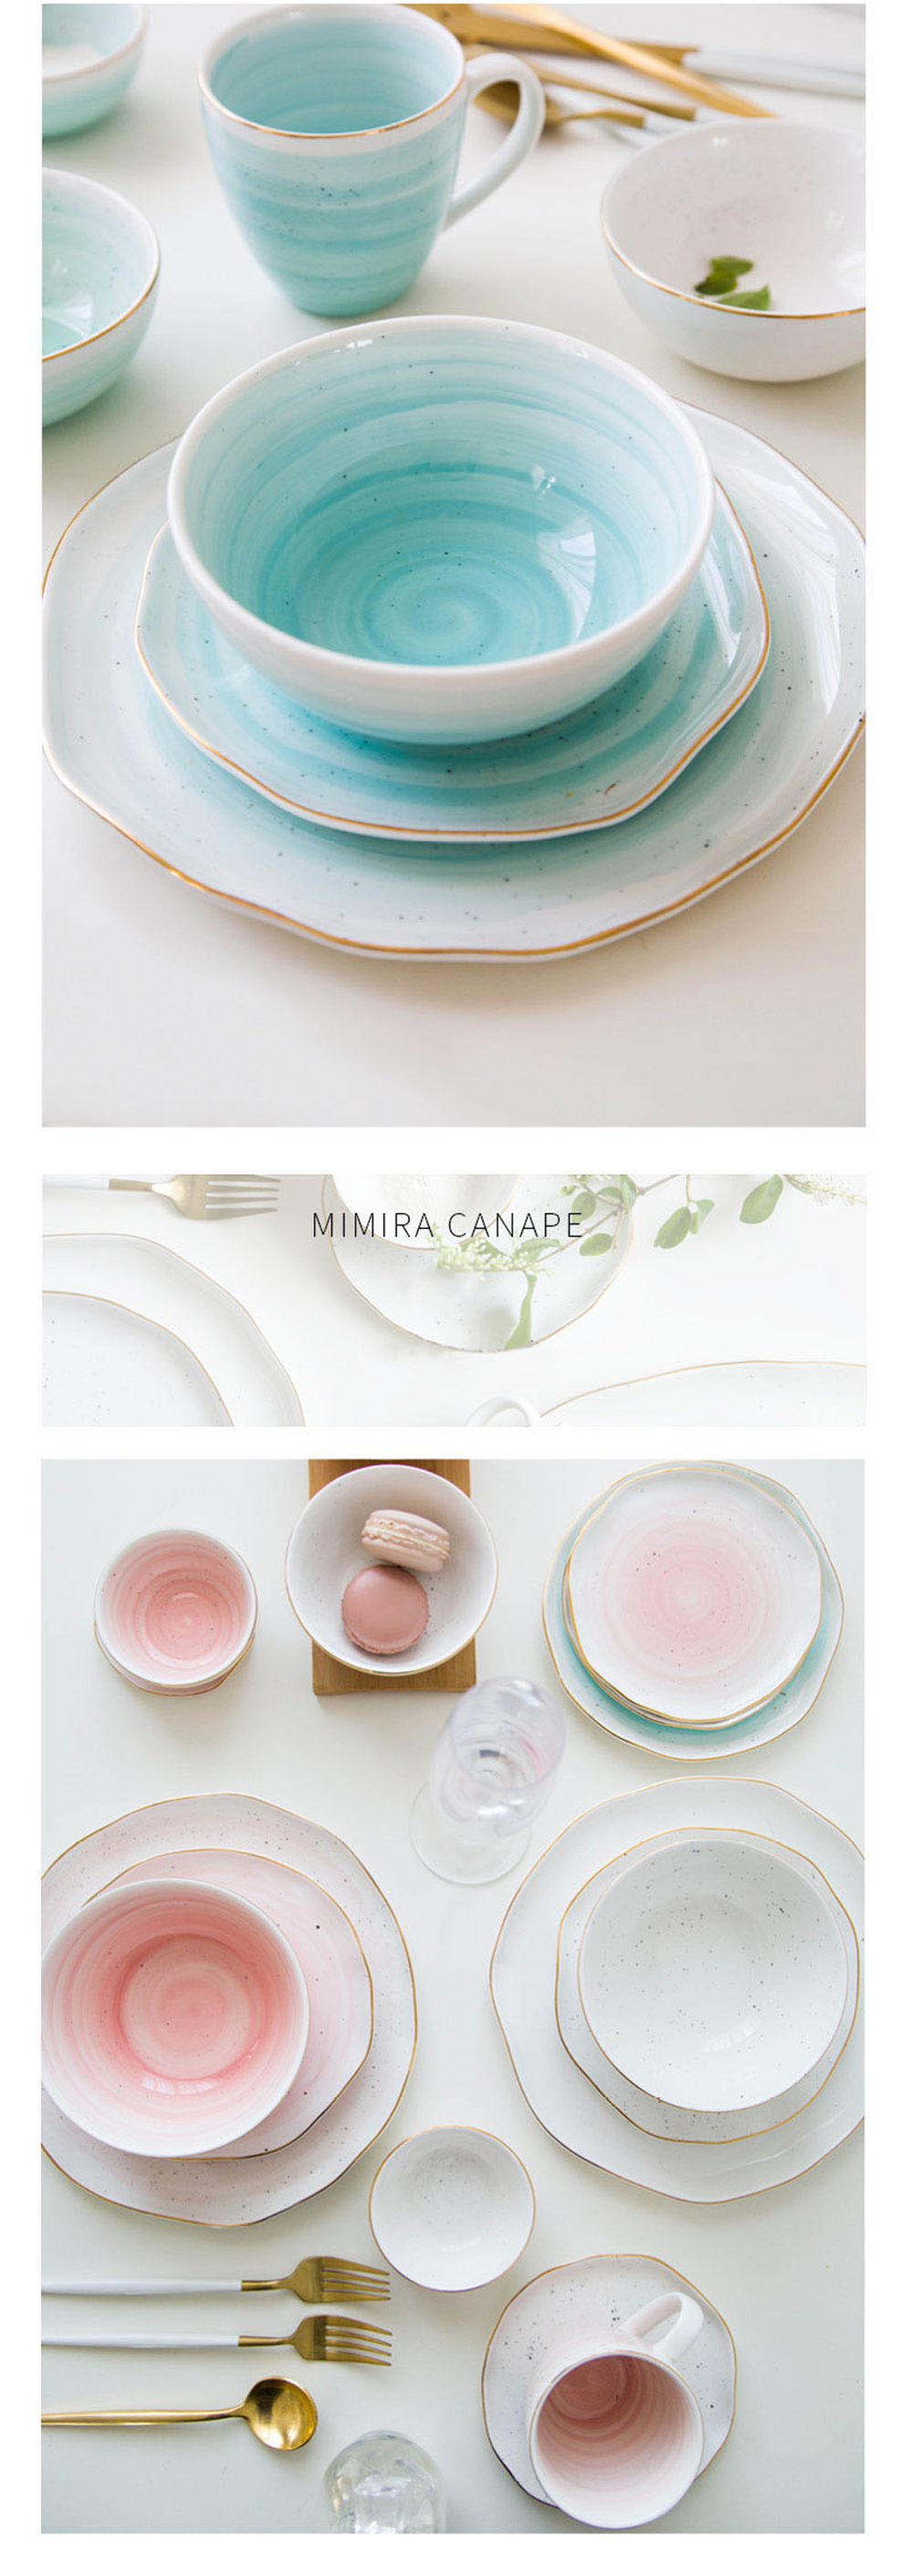 Mimira Bowl Handcrafted Dinnerware